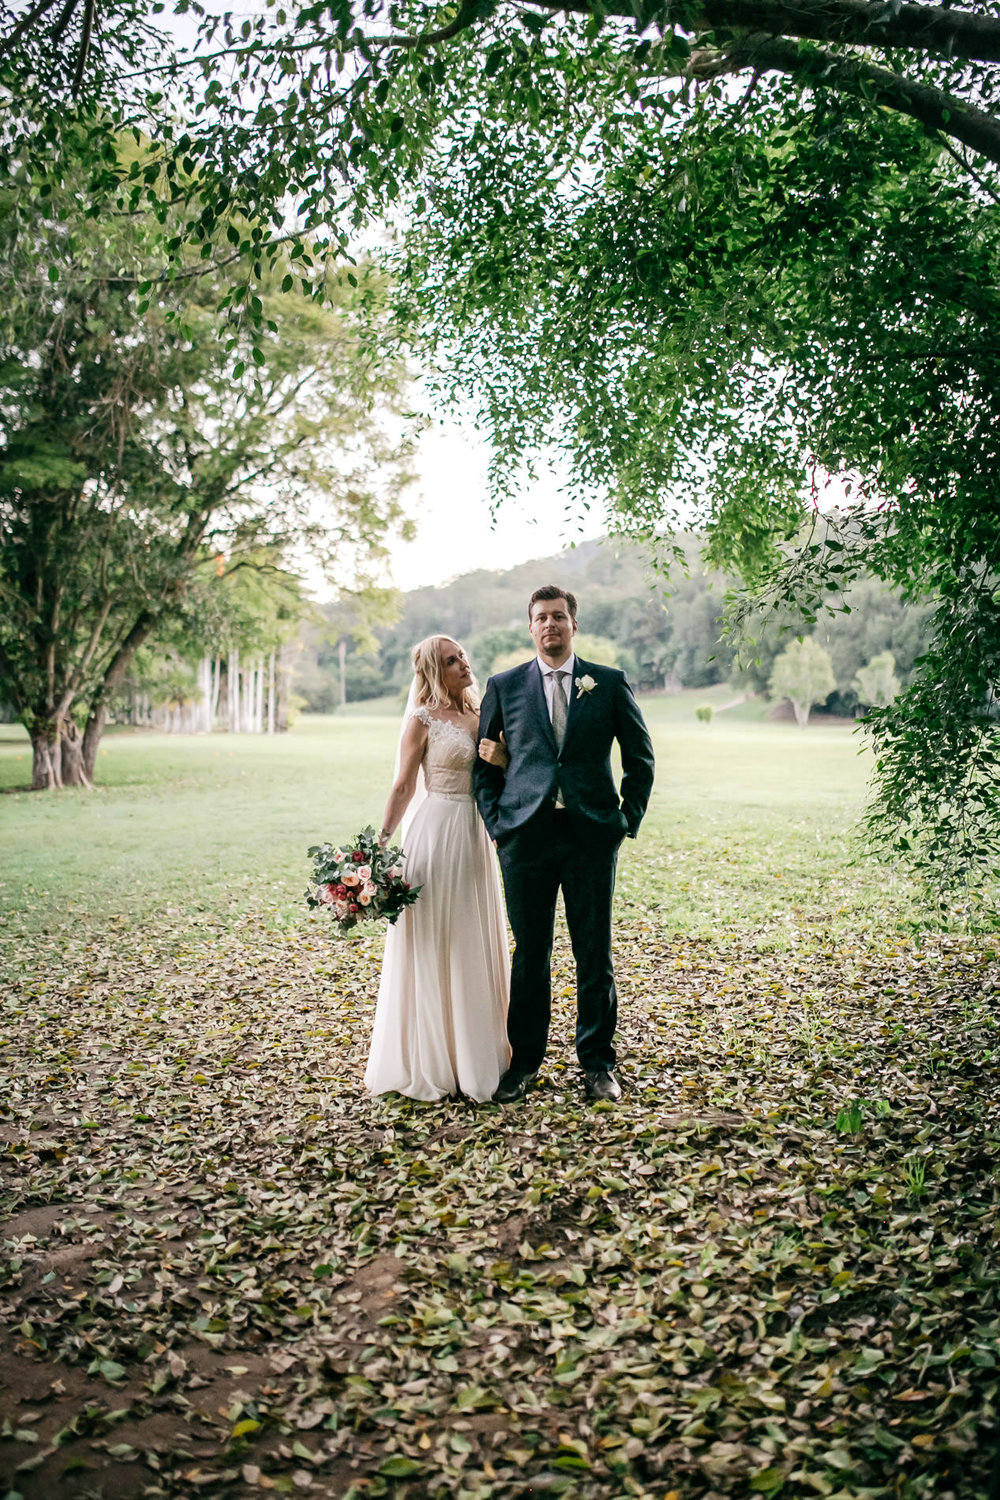 True North Photography_Boomerang Farm_Stacey and Isaac_Gold Coast Wedding_Barm Wedding_Hinterland Wedding-174.jpg